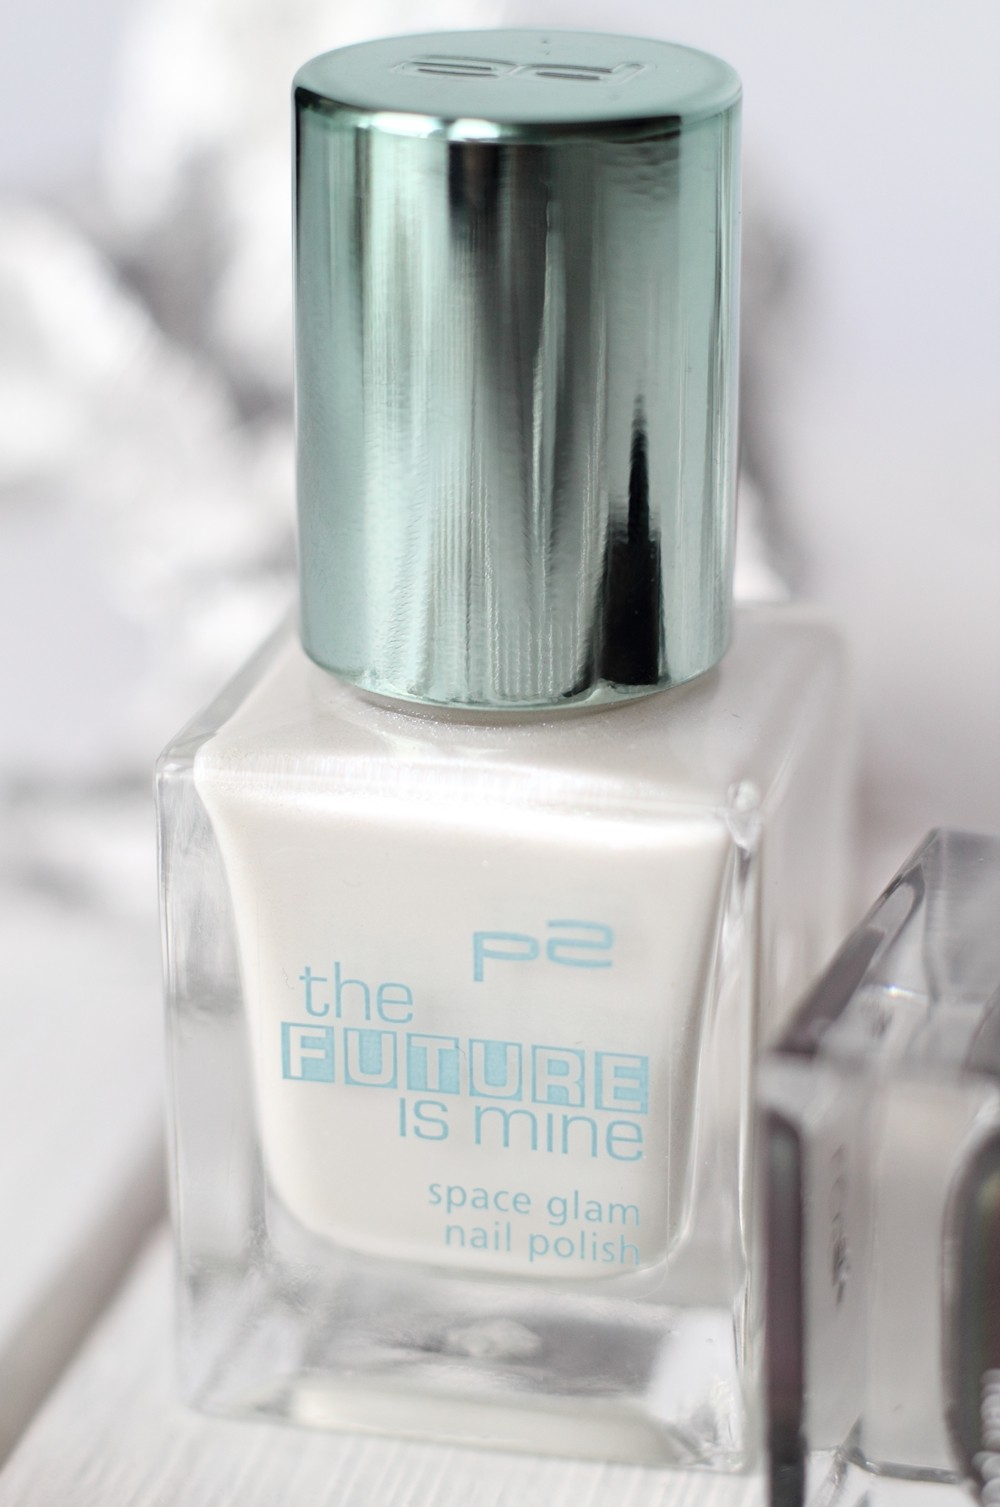 P2 Limited Edition The future is mine Space Glam Nagellack 020 Milky Way